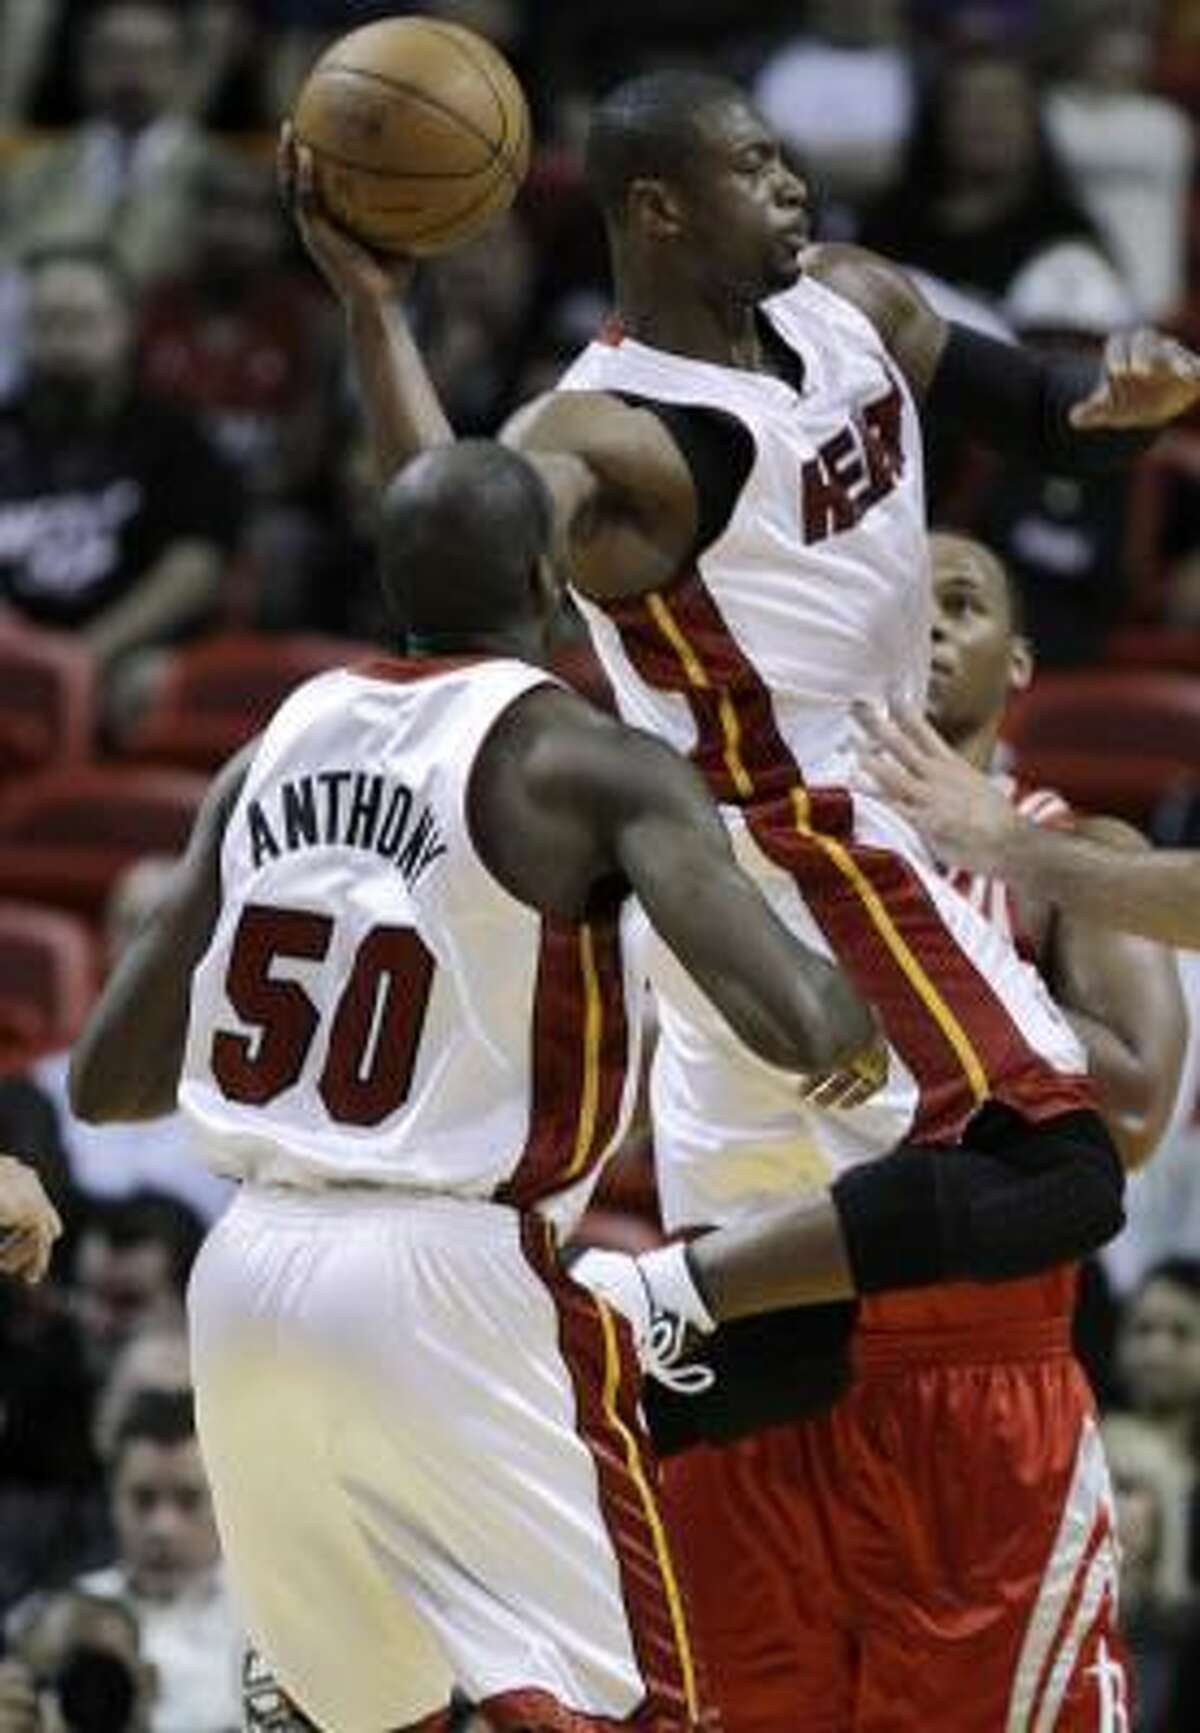 Miami Heat guard Dwyane Wade passes the ball as center Joel Anthony looks on in the first quarter. The Heat built an eight-point lead after one and would build on it from there.